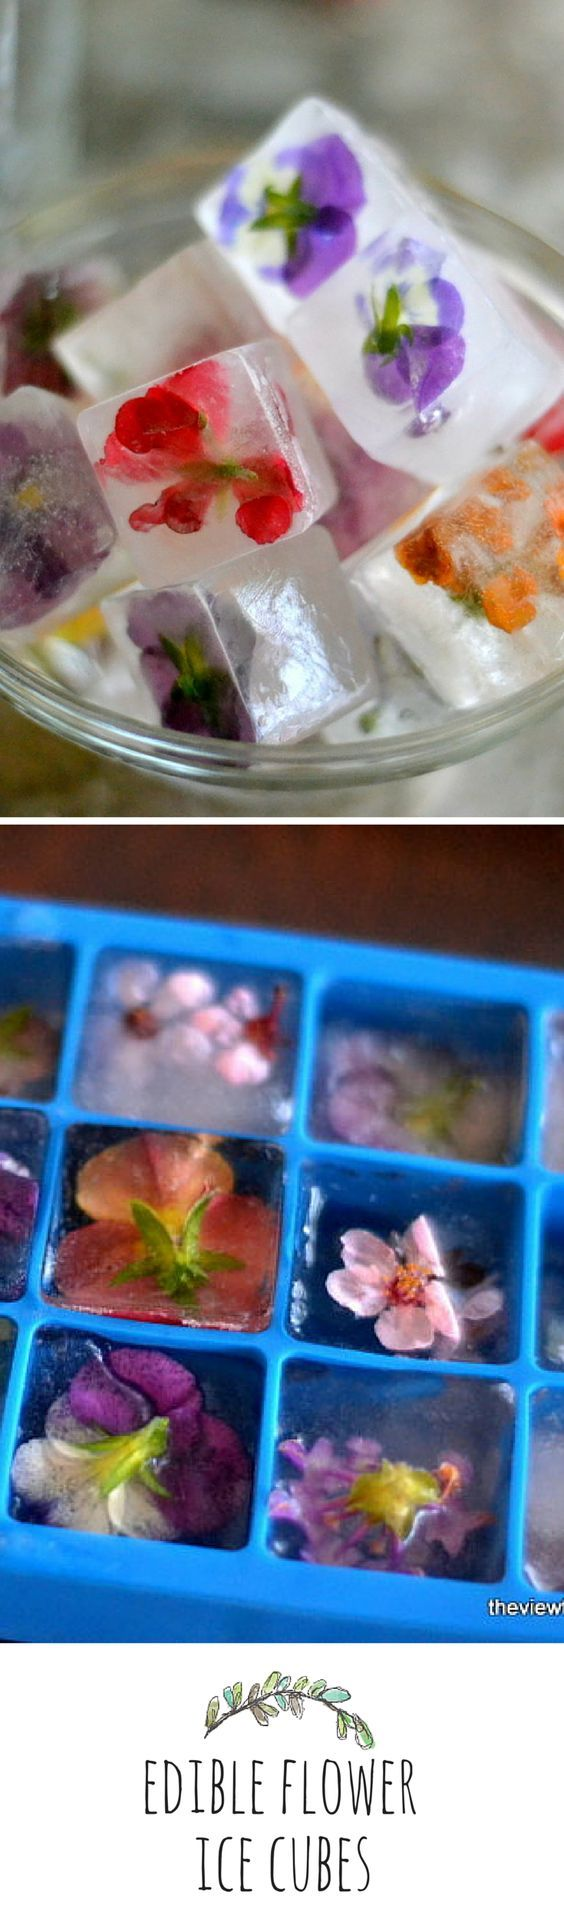 Edible Flower Ice Cubes: